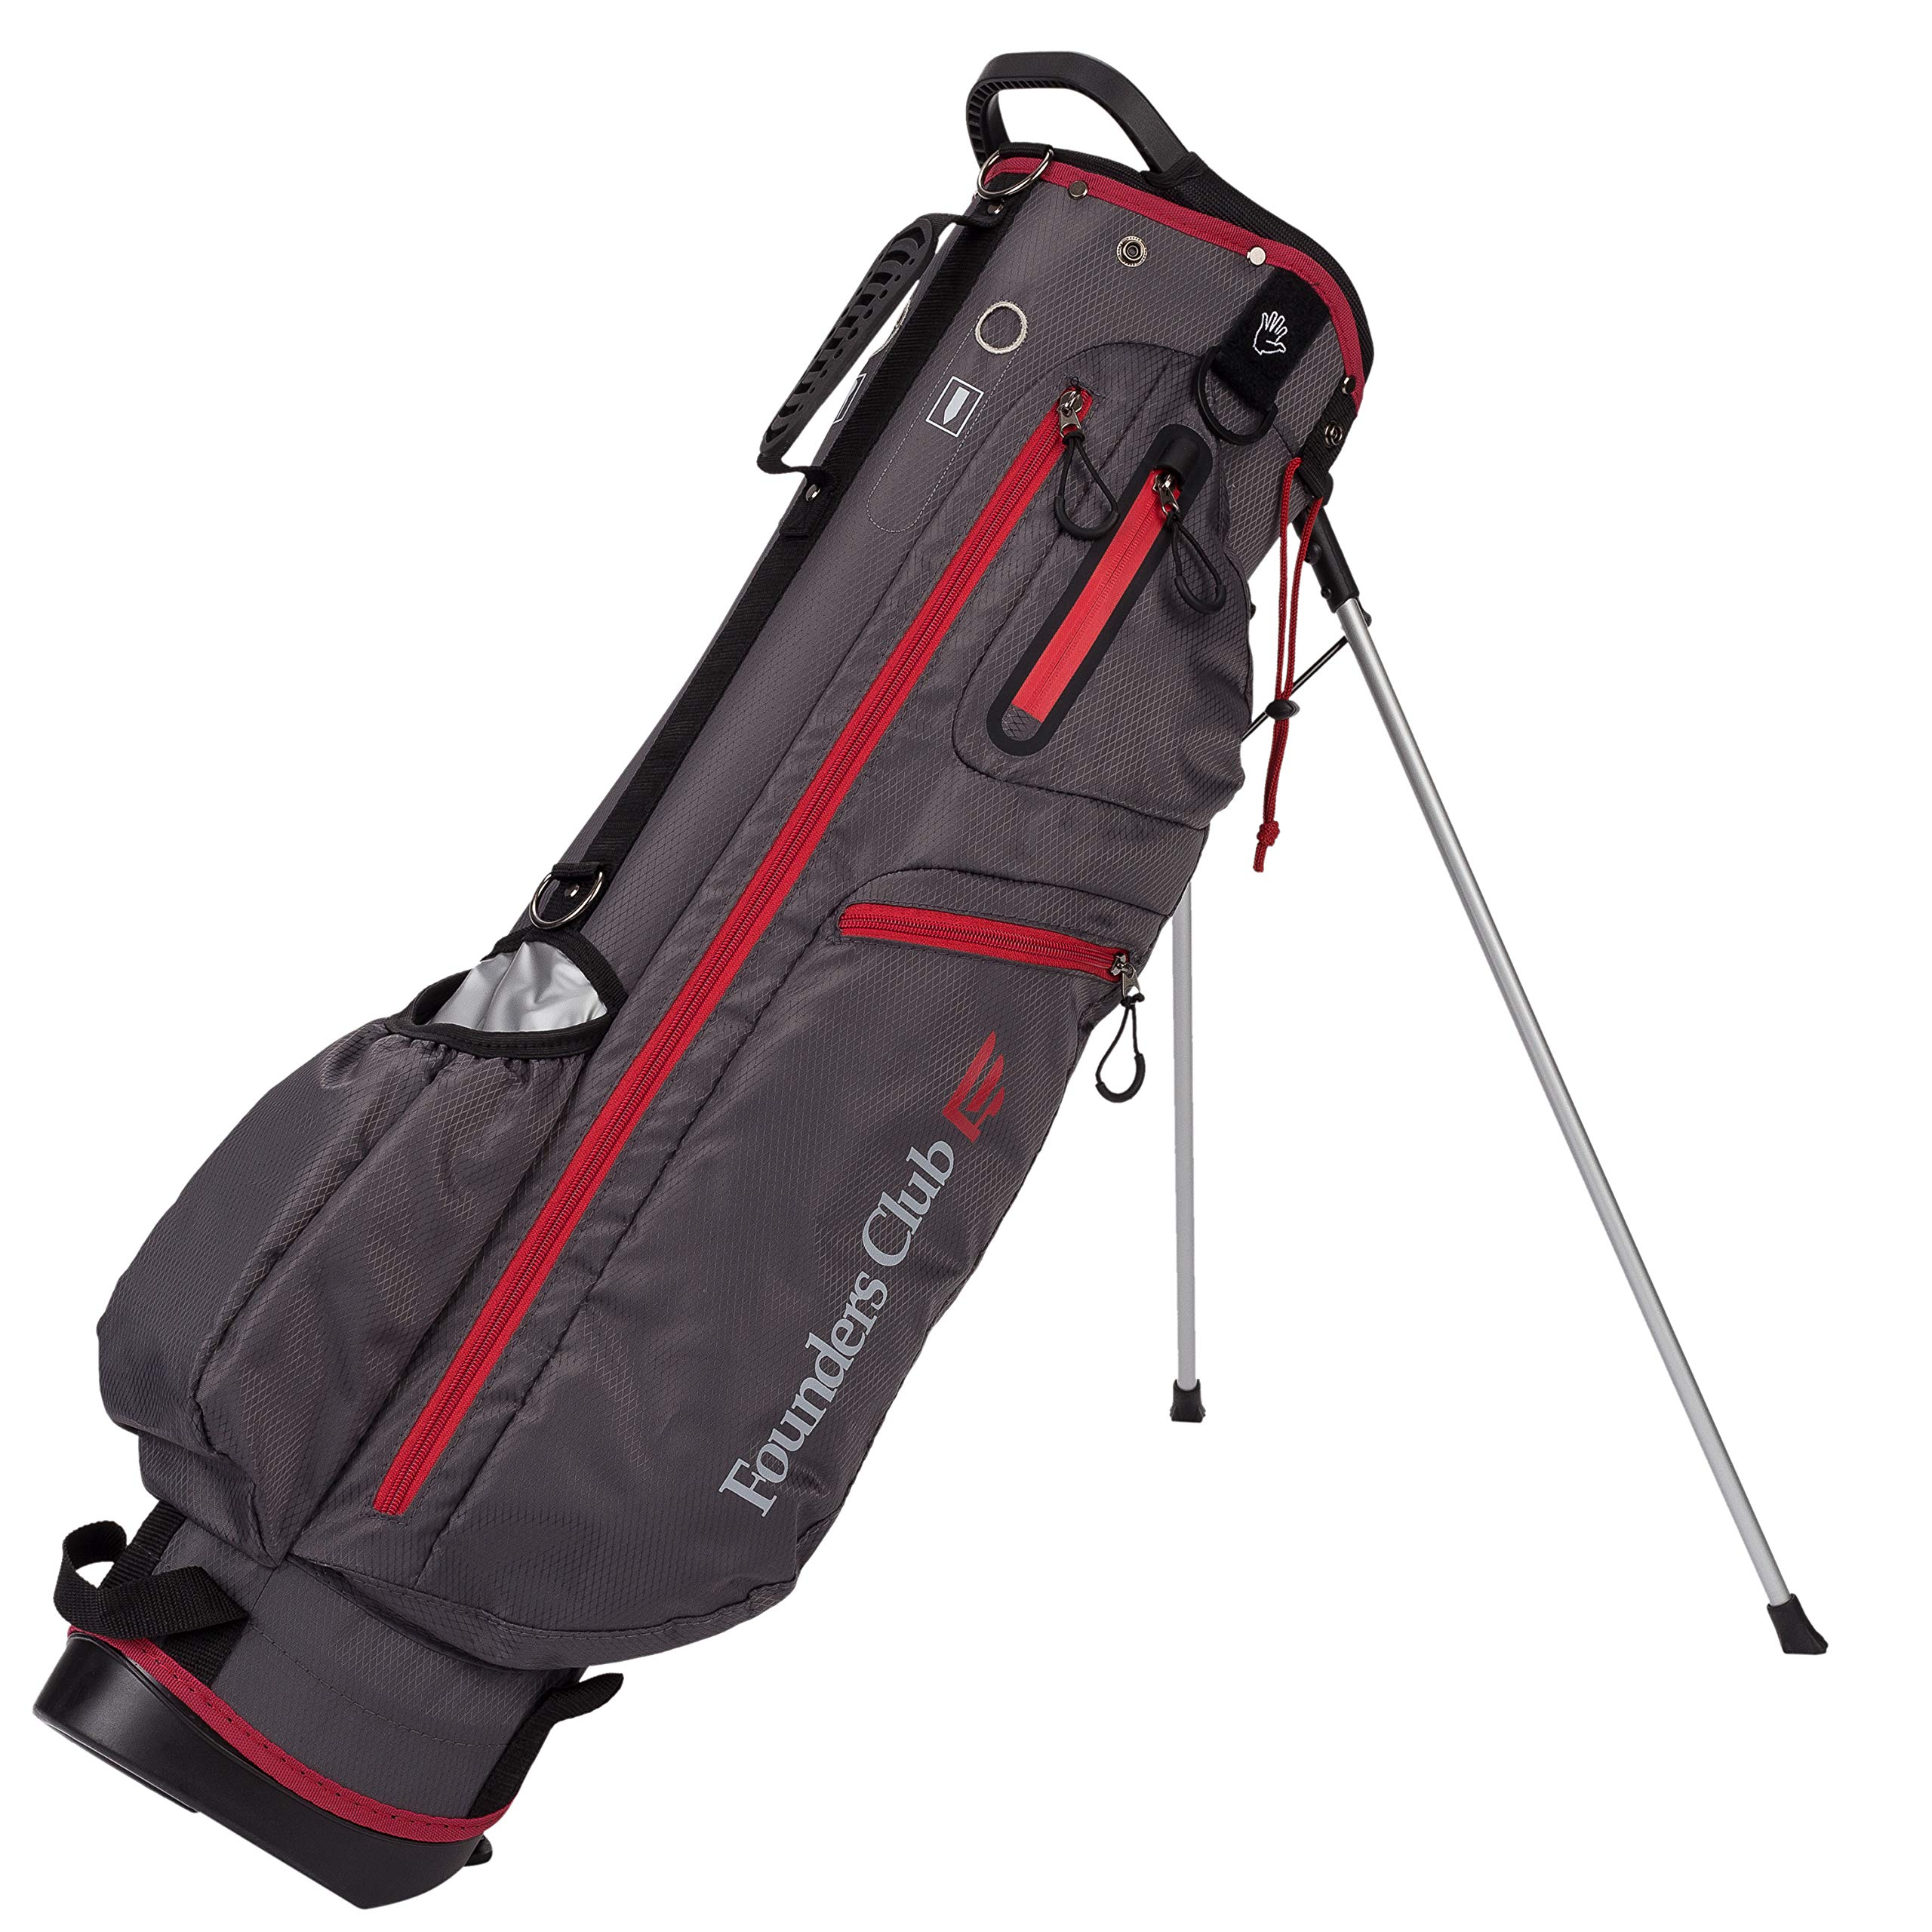 Founders Club 7'' Mini Light Weight Golf Stand Bag (Charcoal)